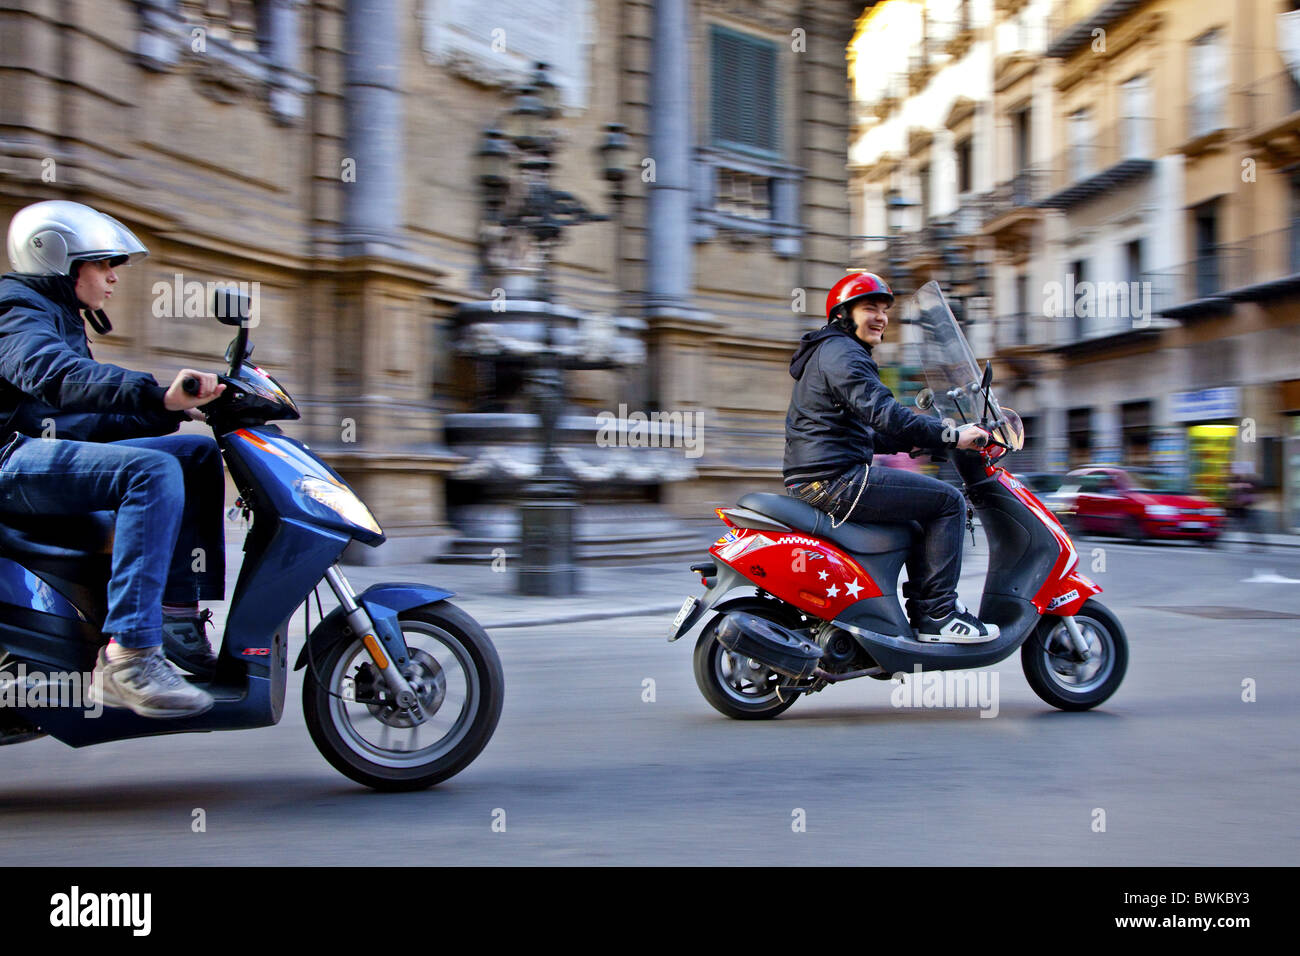 Scooters in the street, Palermo, Sicily, Italy - Stock Image